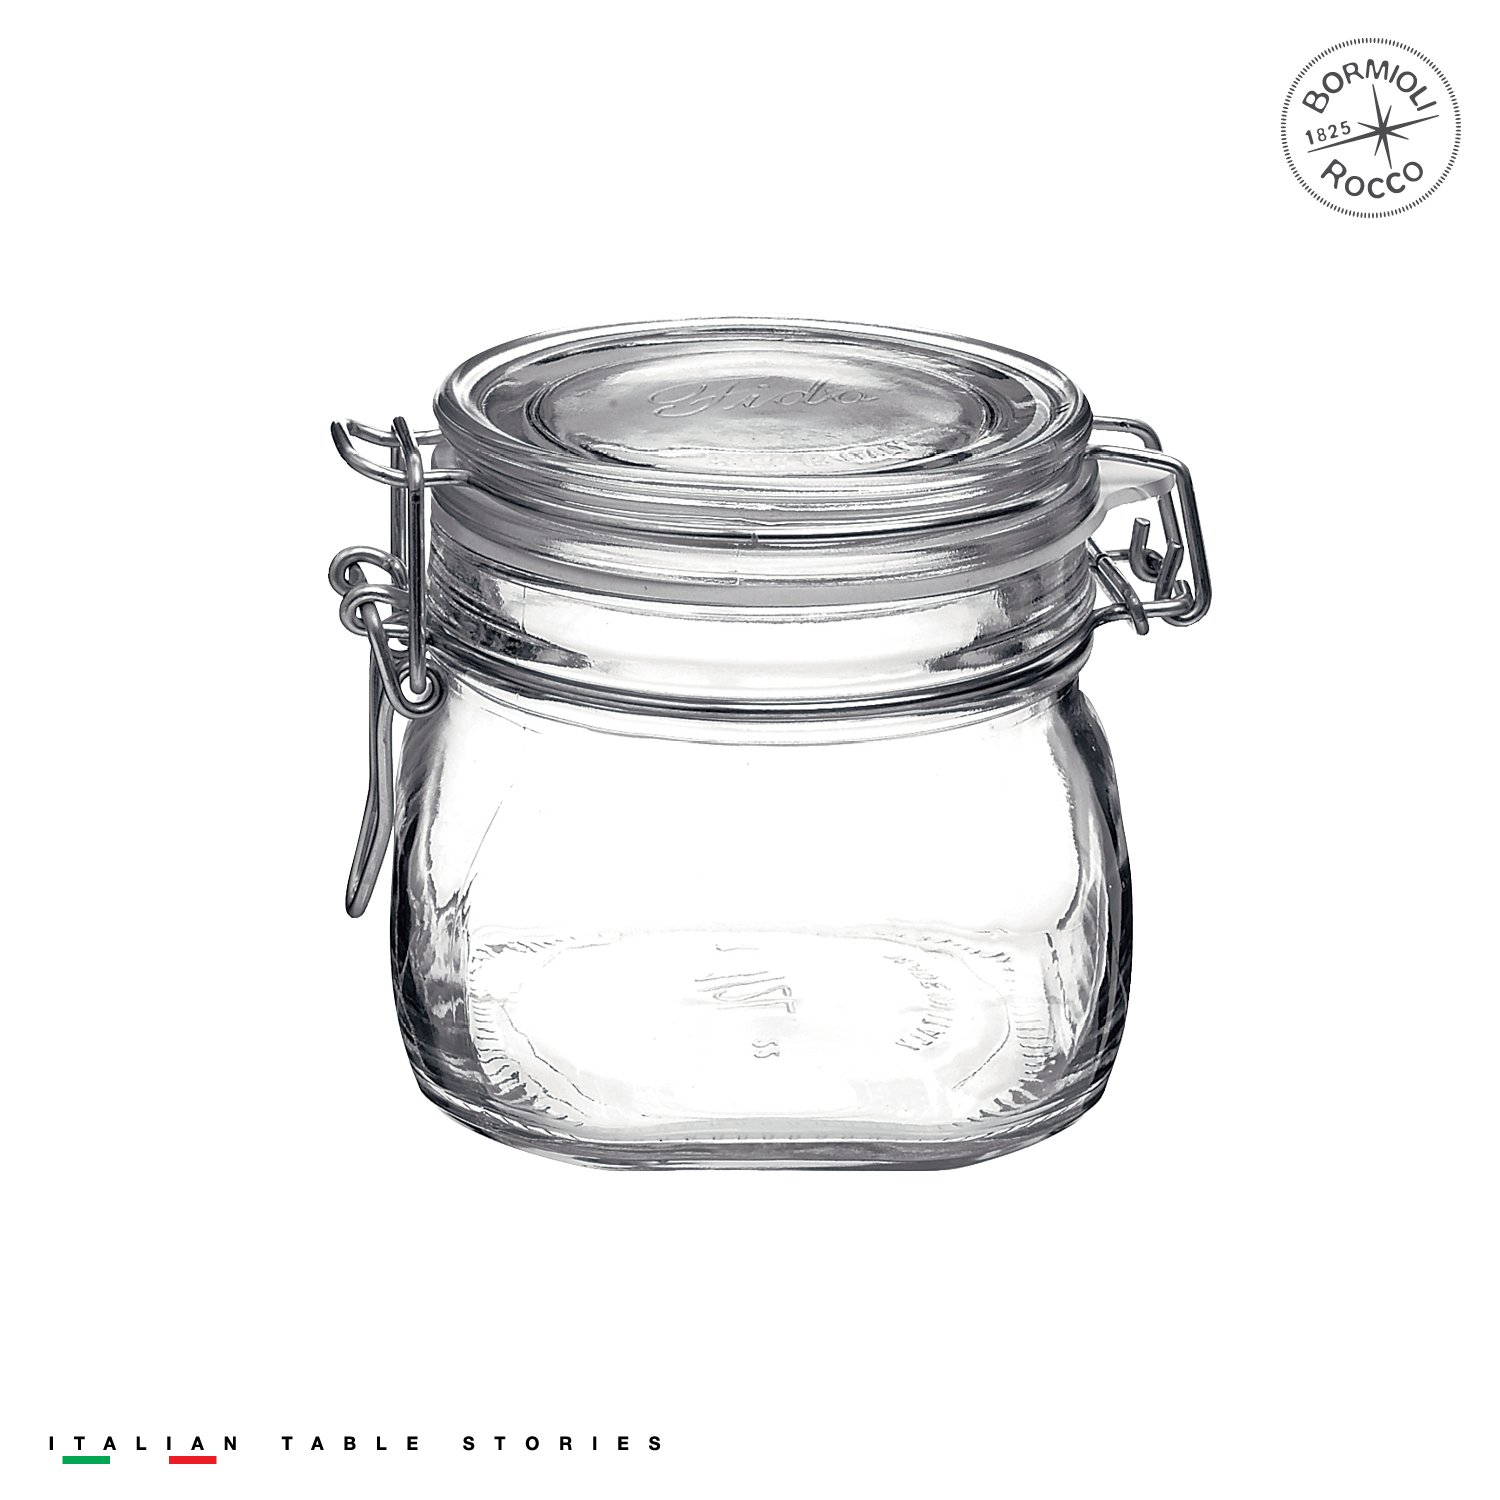 Bormioli Rocco Fido 17.5 Ounce Glass Storage Jars: Airtight Hinged Lid With Leak Proof Gasket, Wide Mouth Food Container - For Zero Waste Air Tight Preserving Jam, Spices, Coffee, Sugar & Herbs Bormioli Rocco Glass Co. Inc. 149210M04321991